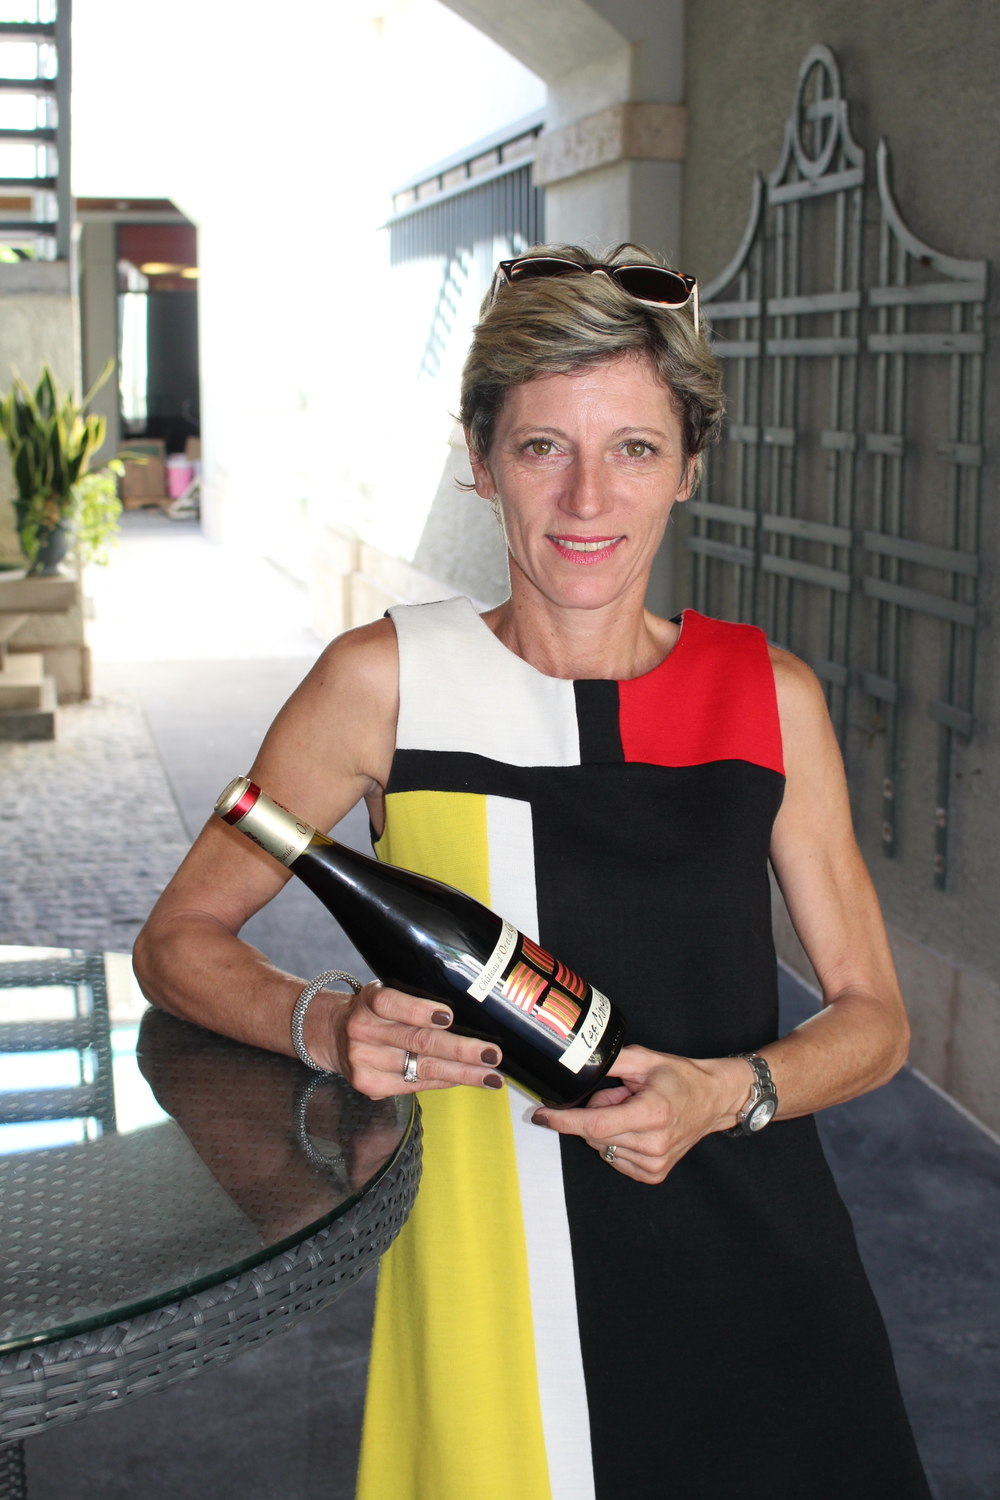 Diane de Putymorin brought her flagship wine to Naples